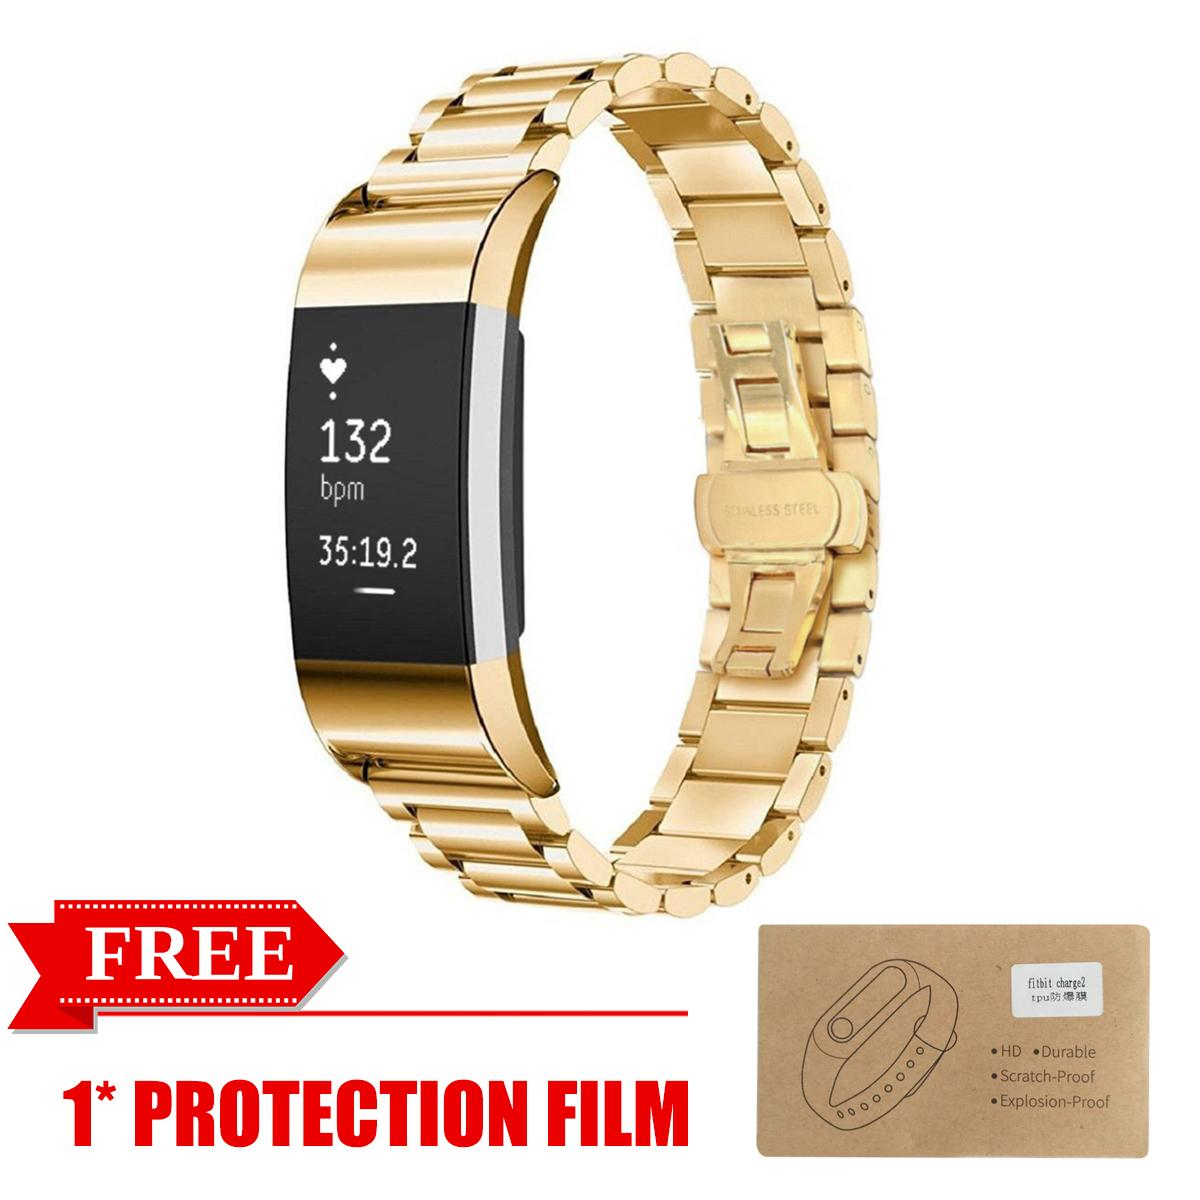 PHP 628. Stainless Steel Bracelet Metal Watch Wrist Band Strap For Fitbit Charge 2 Watch with free ...